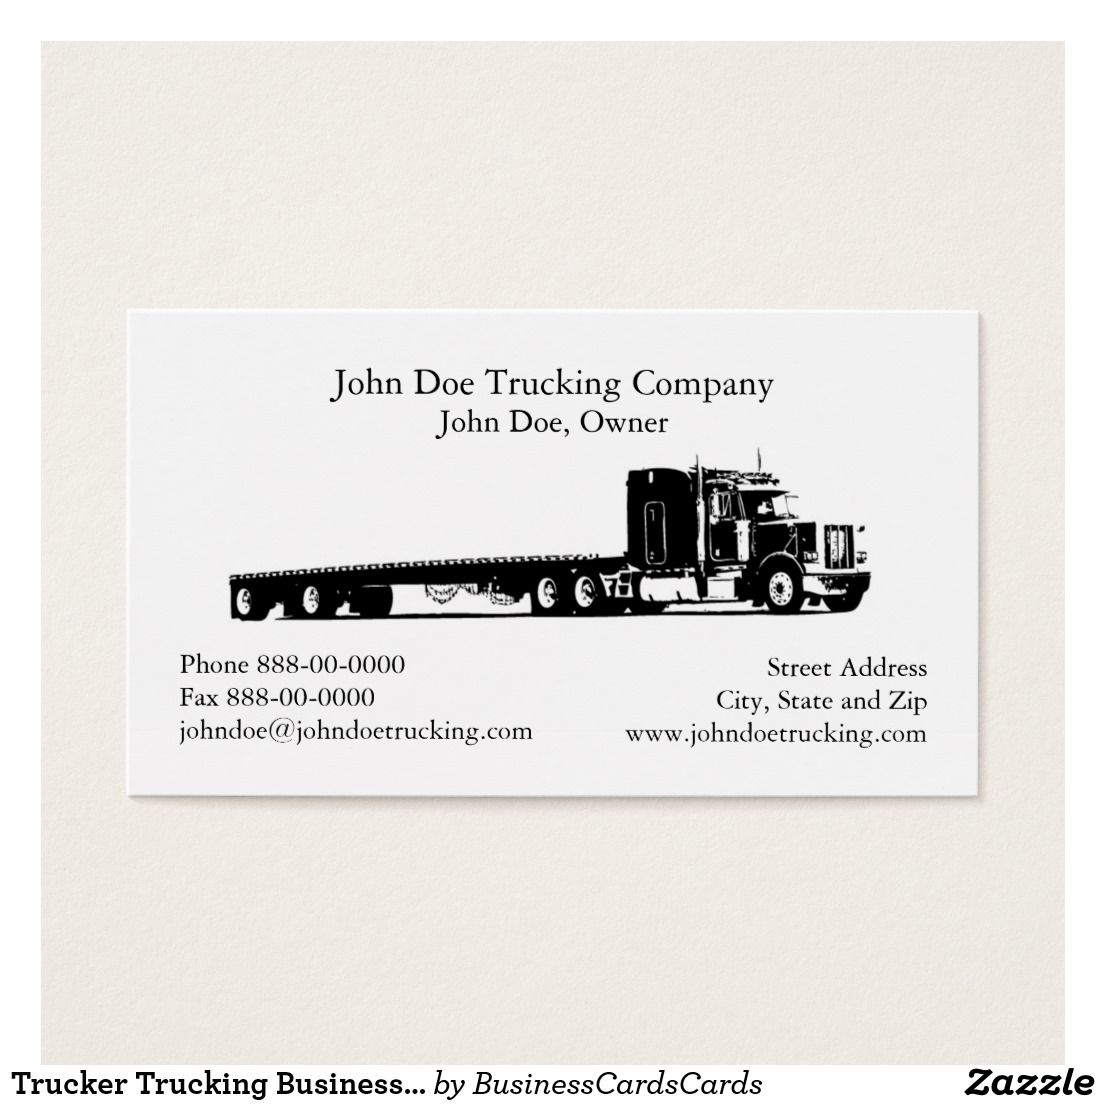 Trucker Trucking Business Card | Business cards and Business